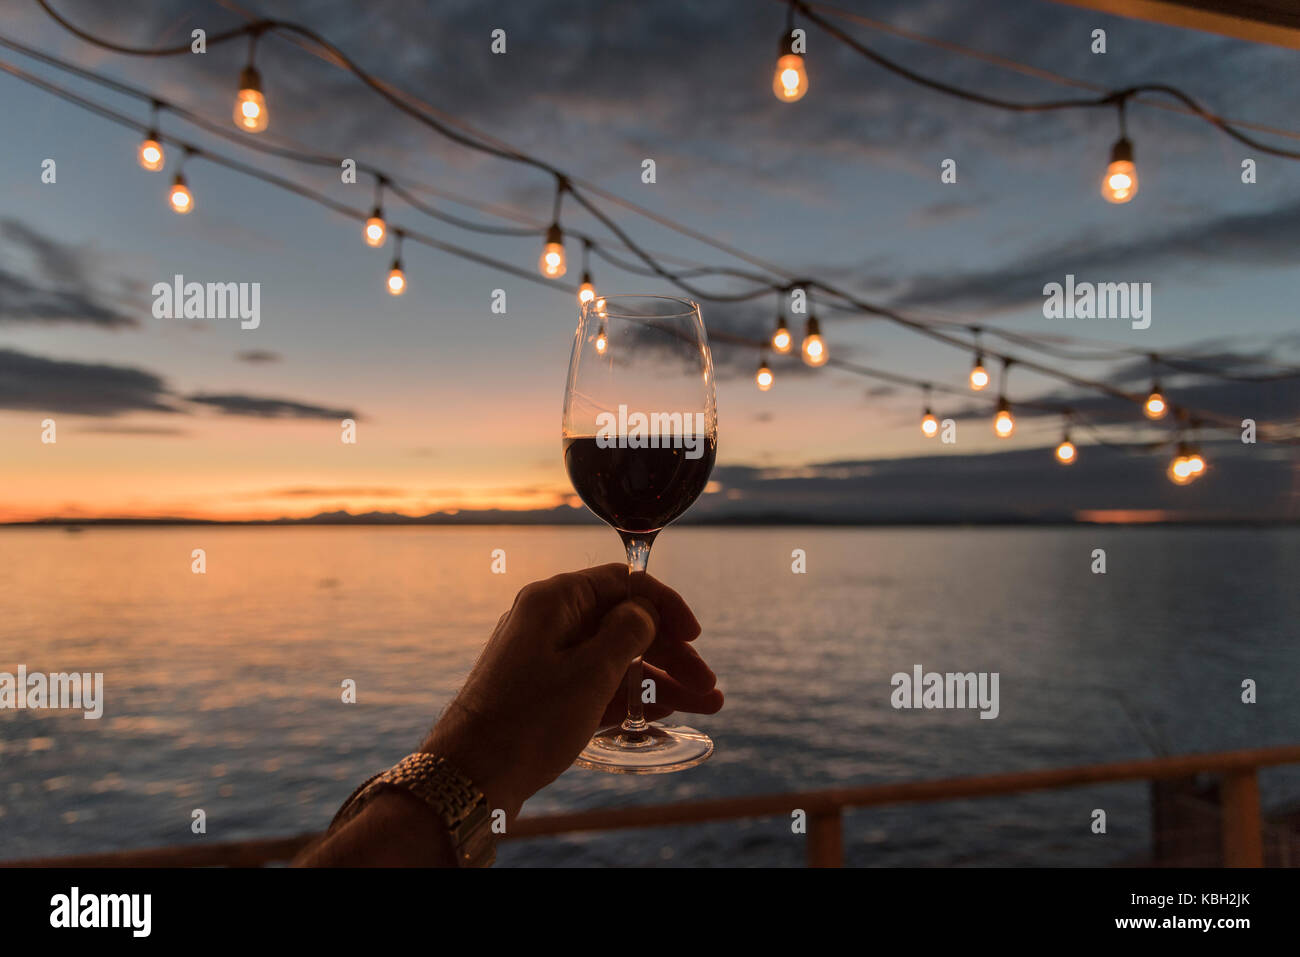 Holding up red wine under hanging deck lights at sunset over the sea. - Stock Image